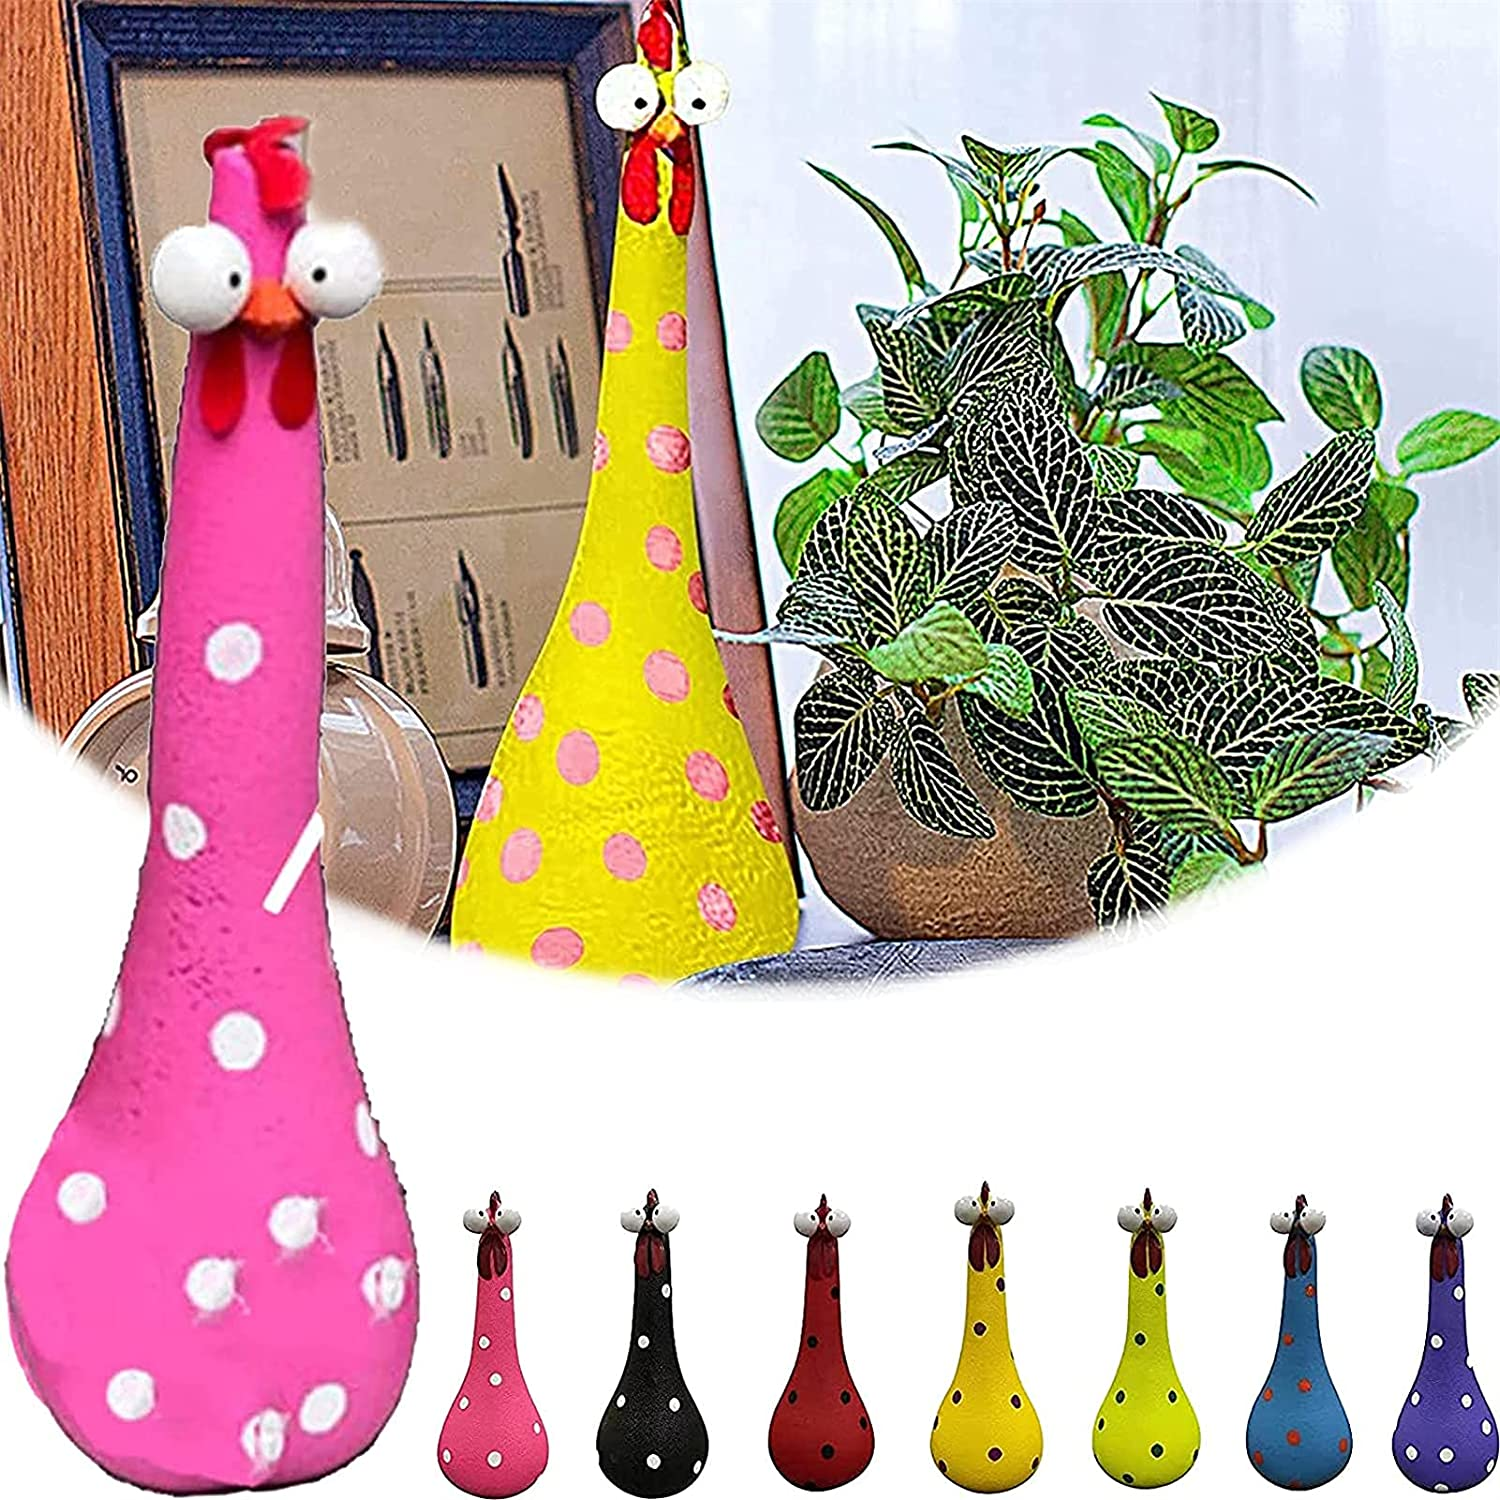 Silly Chicken Decor Resin Ornaments New Free Shipping Statu Outdoor Ranking TOP20